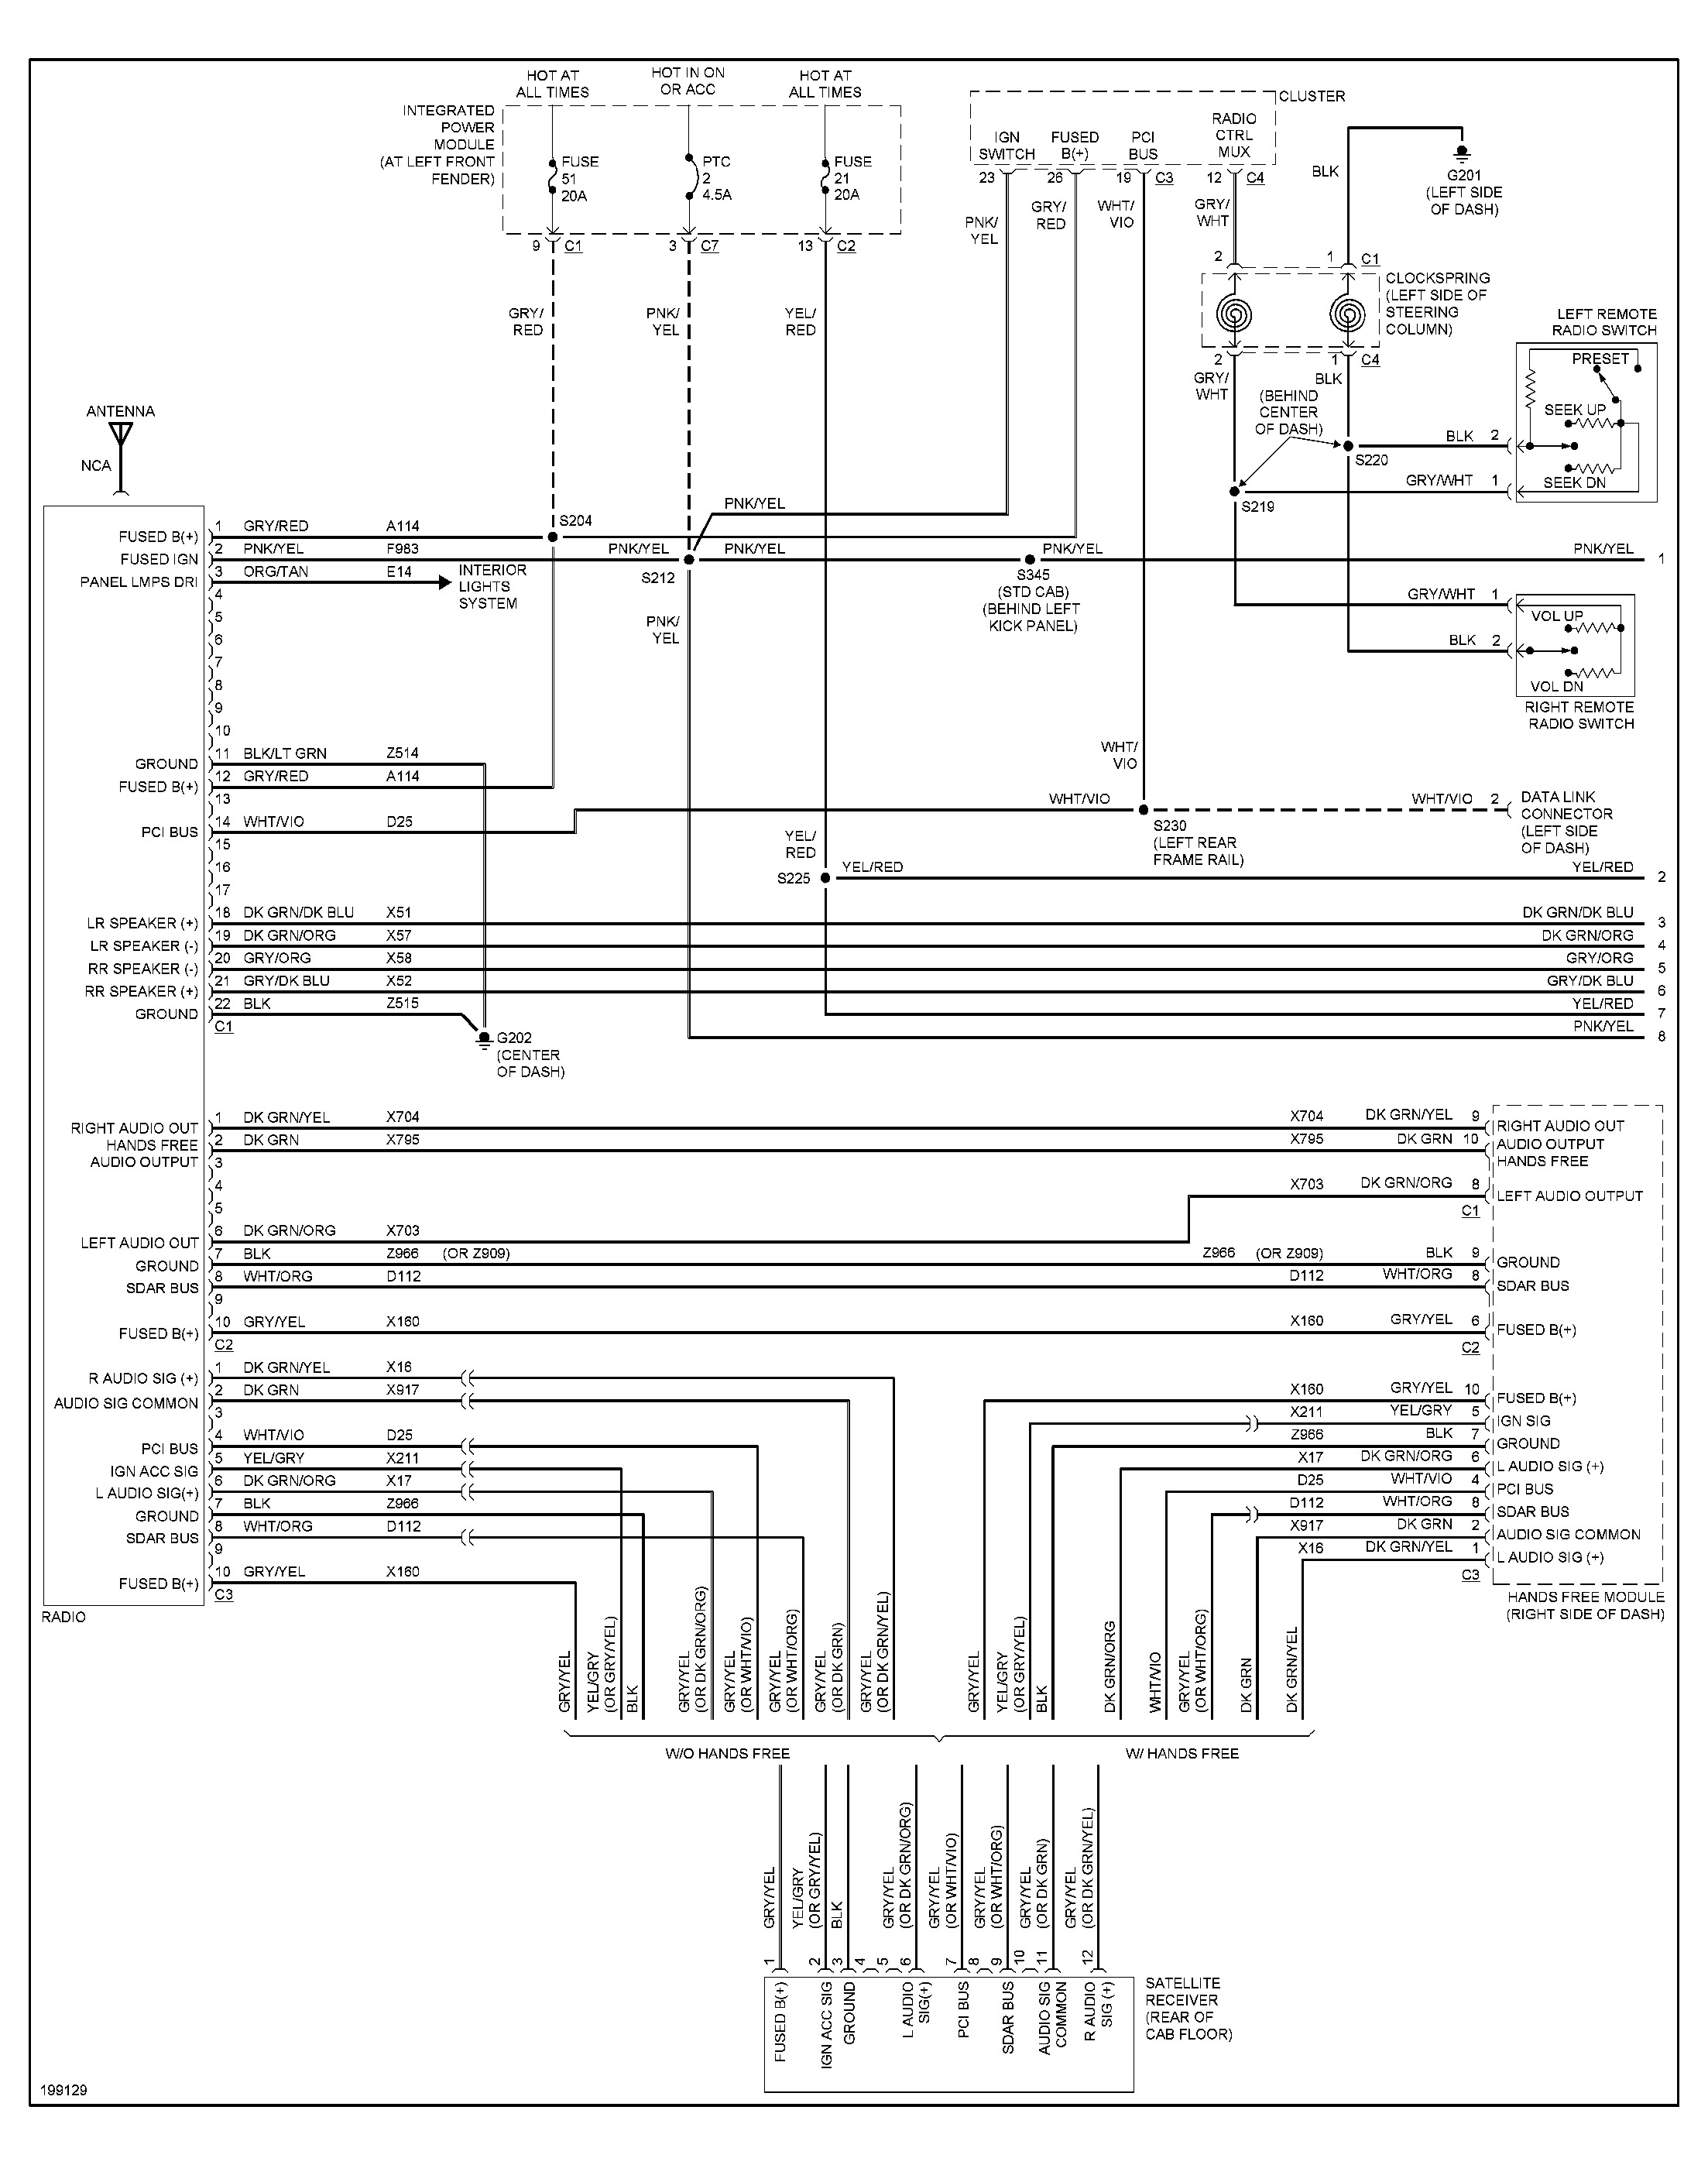 Dodge Ram 1500 Radio Wiring Diagram Manual Of 2013 2004 Infinity Html 2014 1999